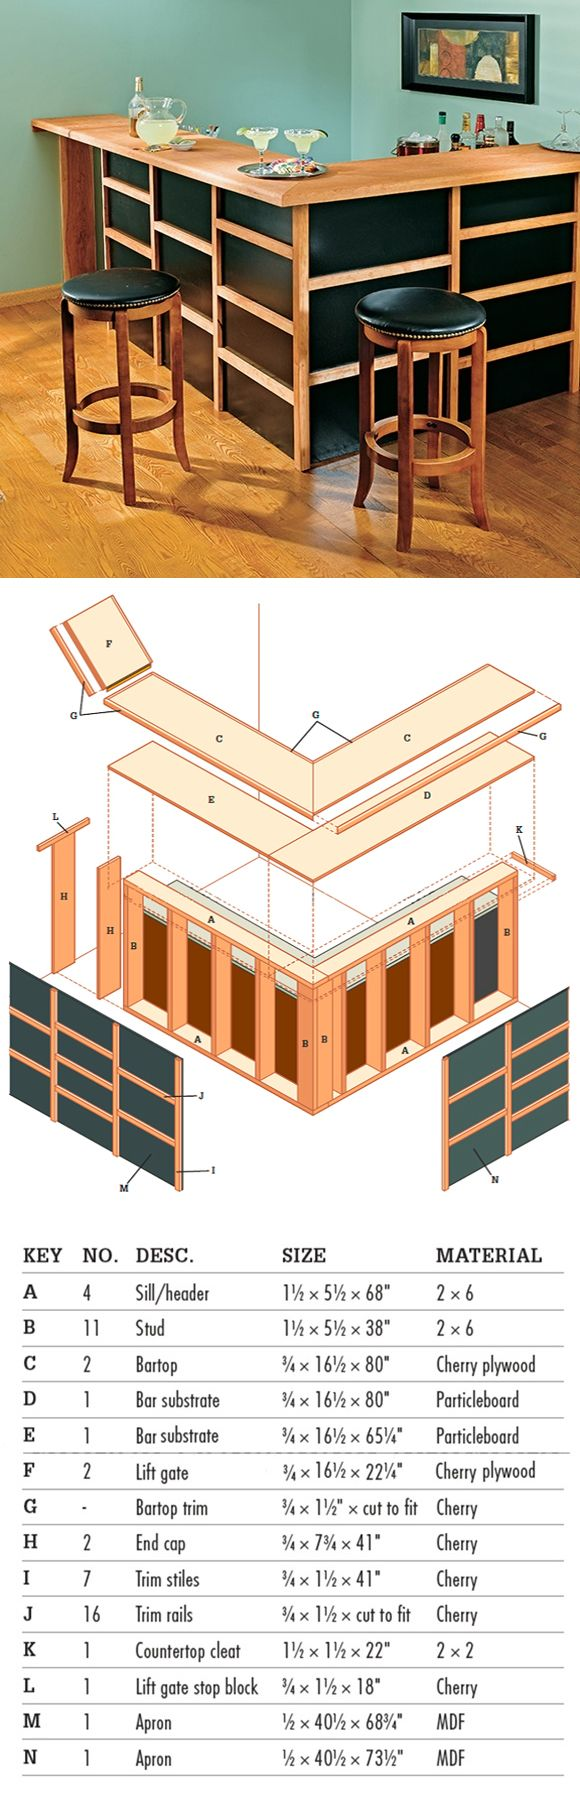 how to build a basement in canada